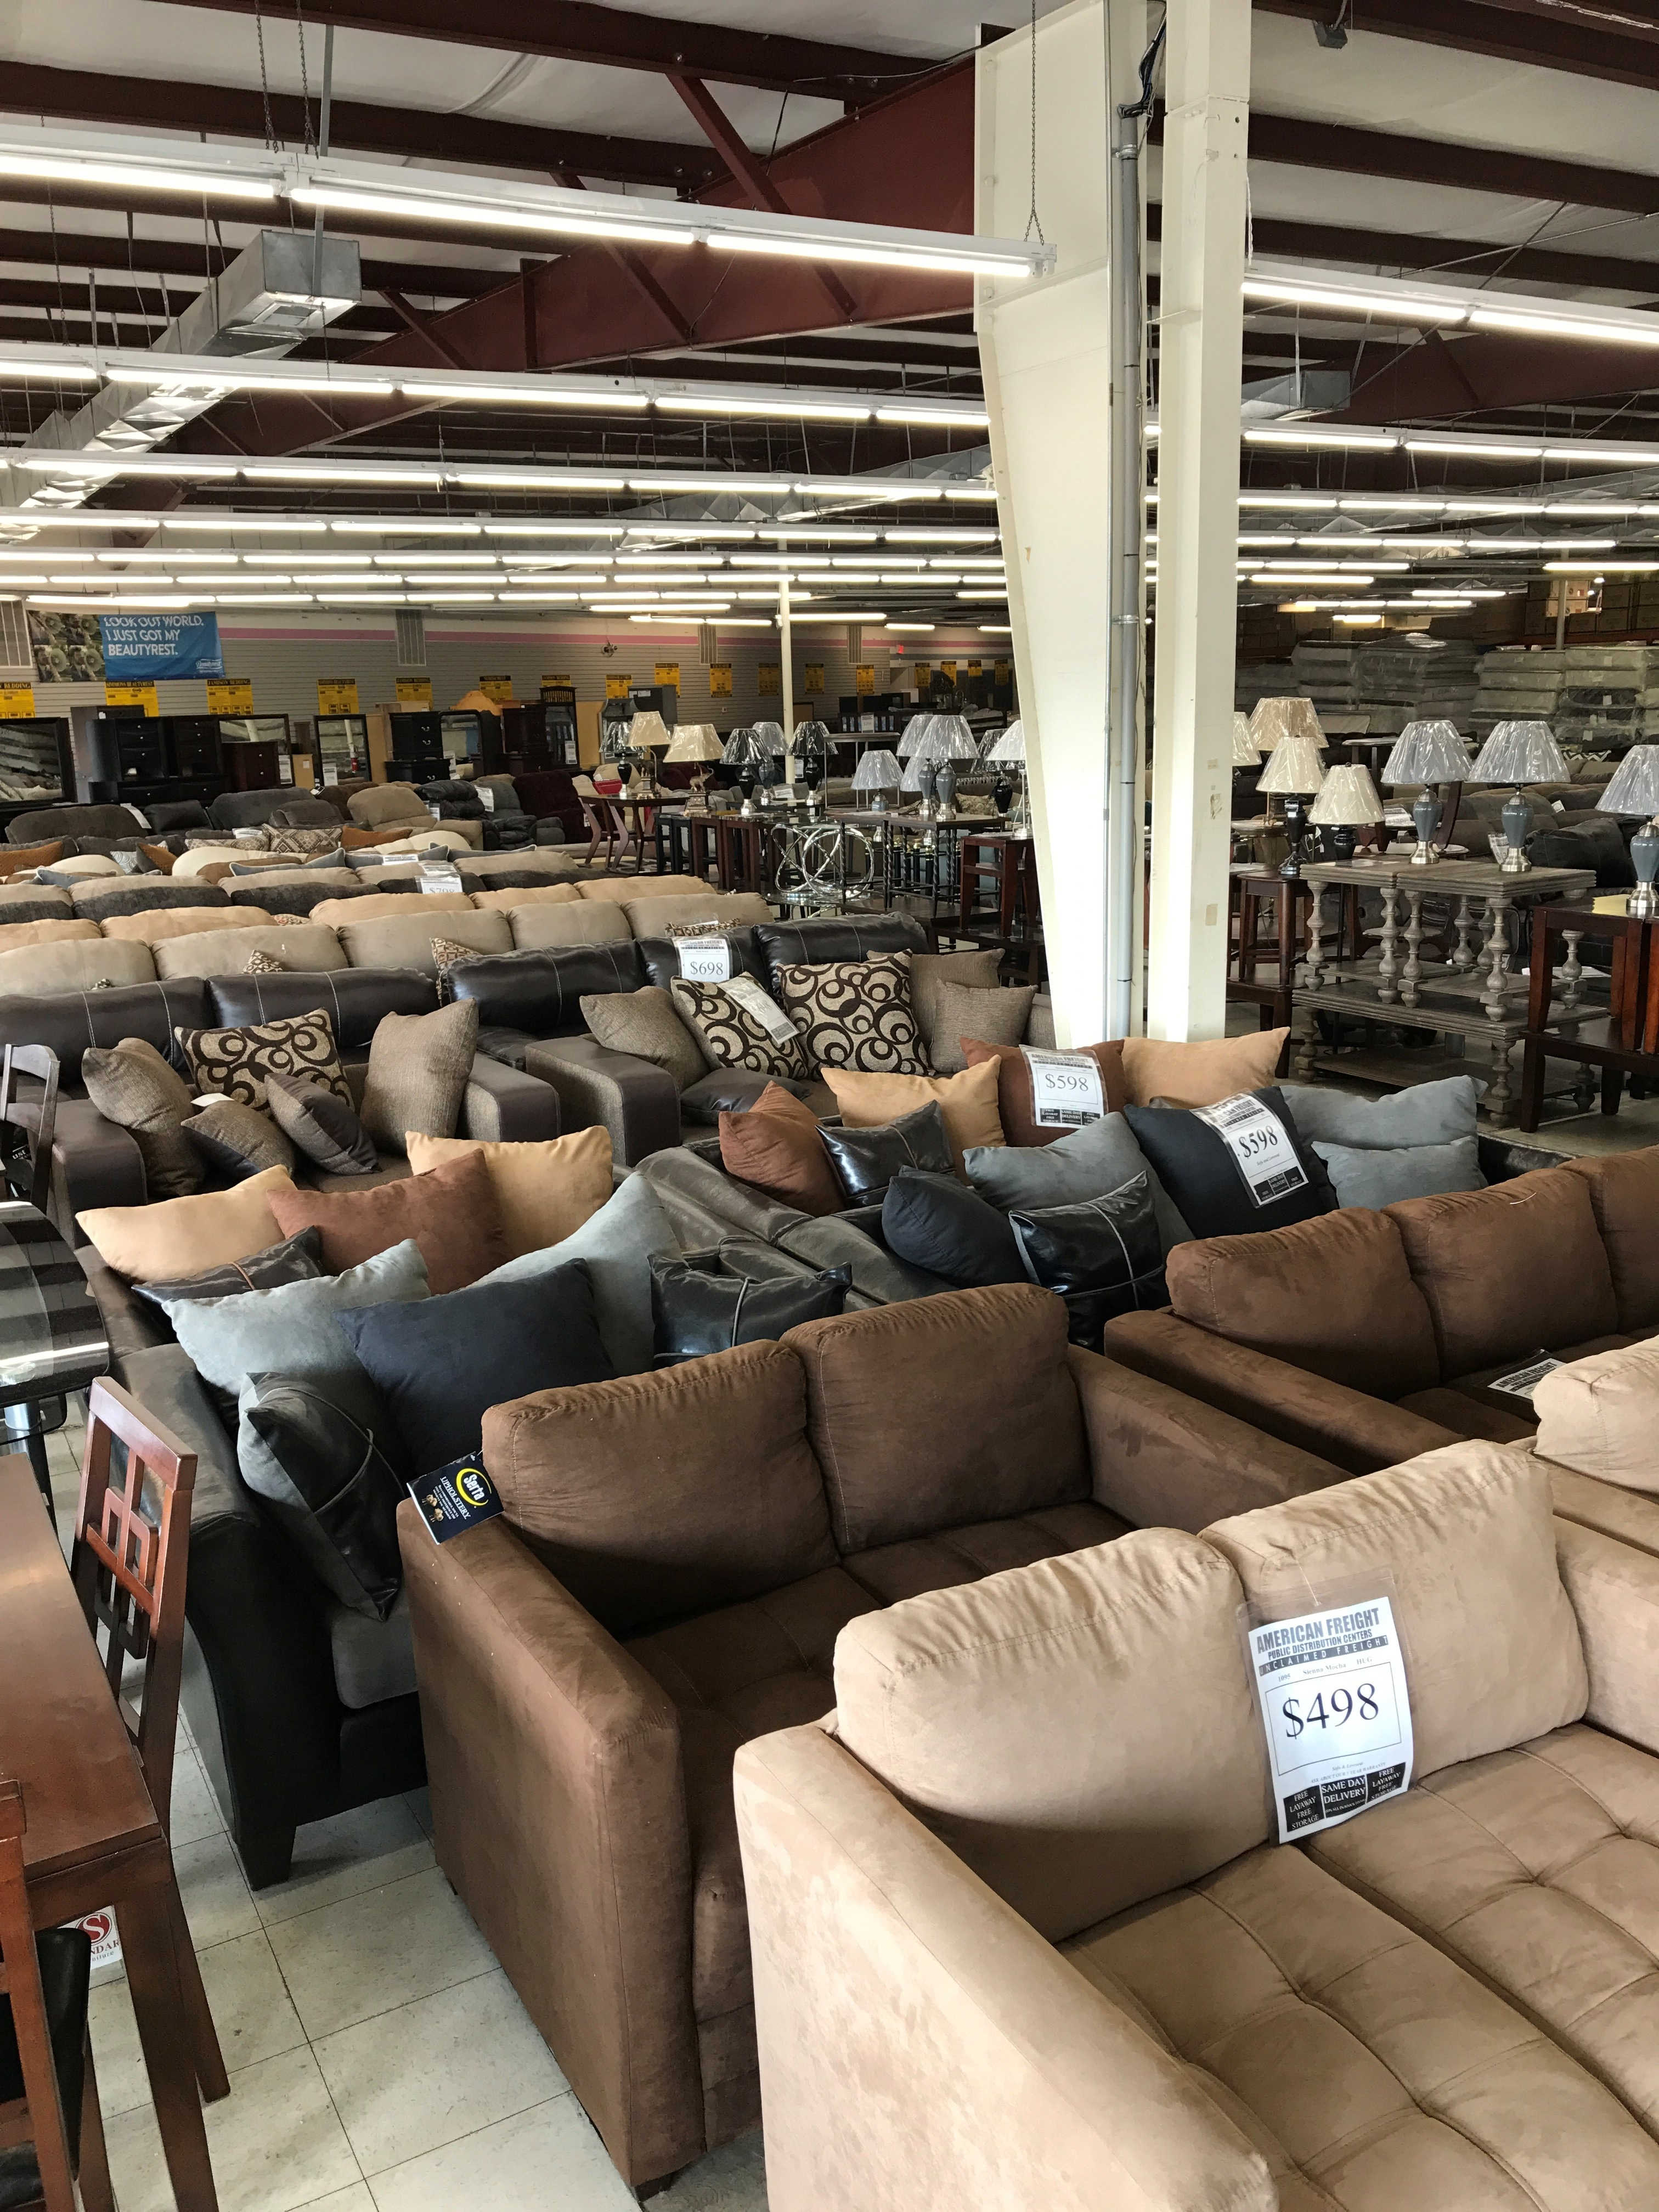 Merveilleux American Freight Furniture And Mattress 2518 North Memorial Parkway  Huntsville, AL Furniture Stores   MapQuest